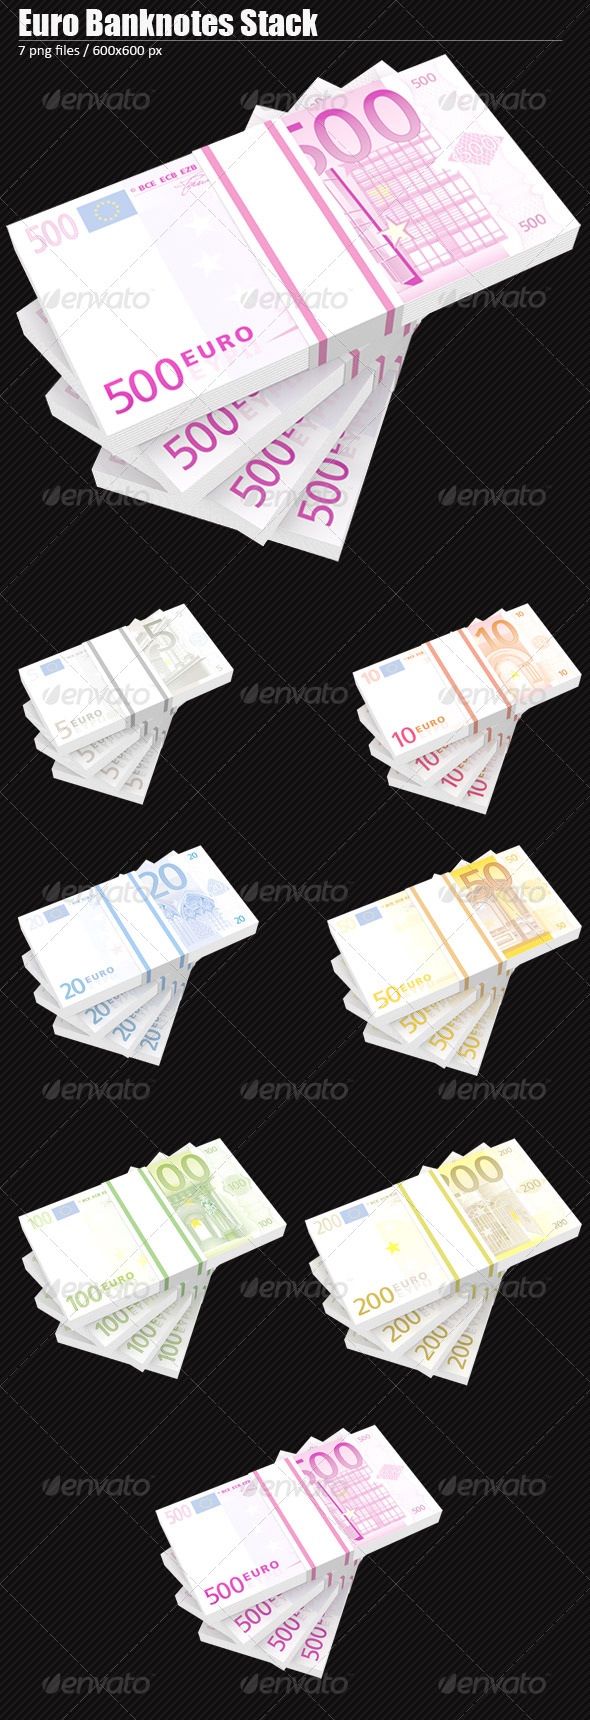 Euro Banknotes Stack - 3D Renders Graphics